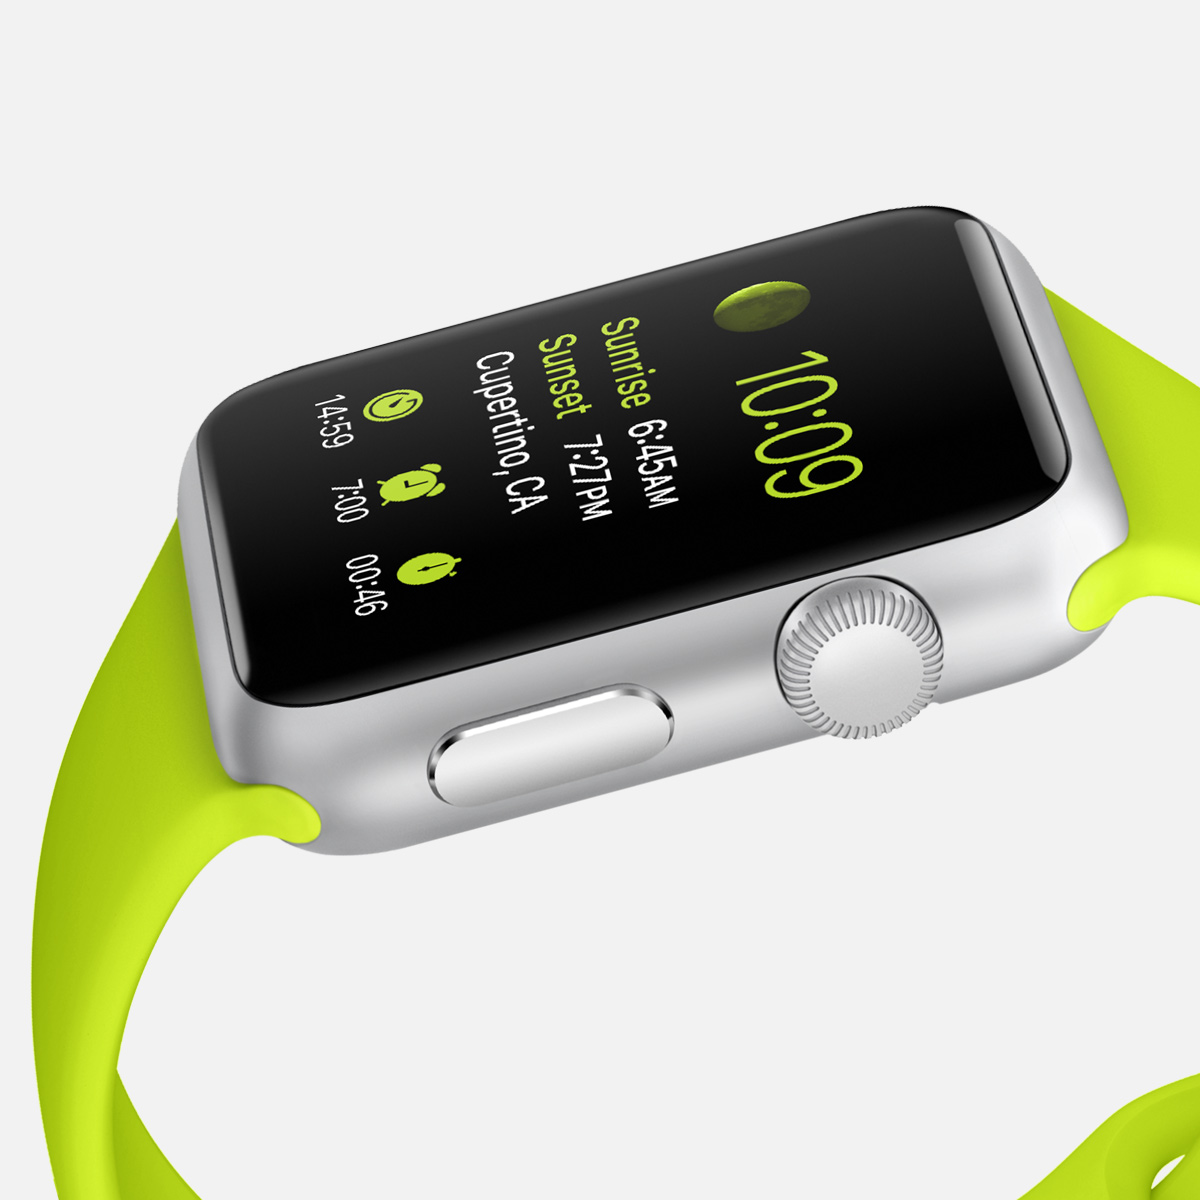 https://www.apple.com/v/watch/a/images/og_apple_watch_sport.jpg?201410080719